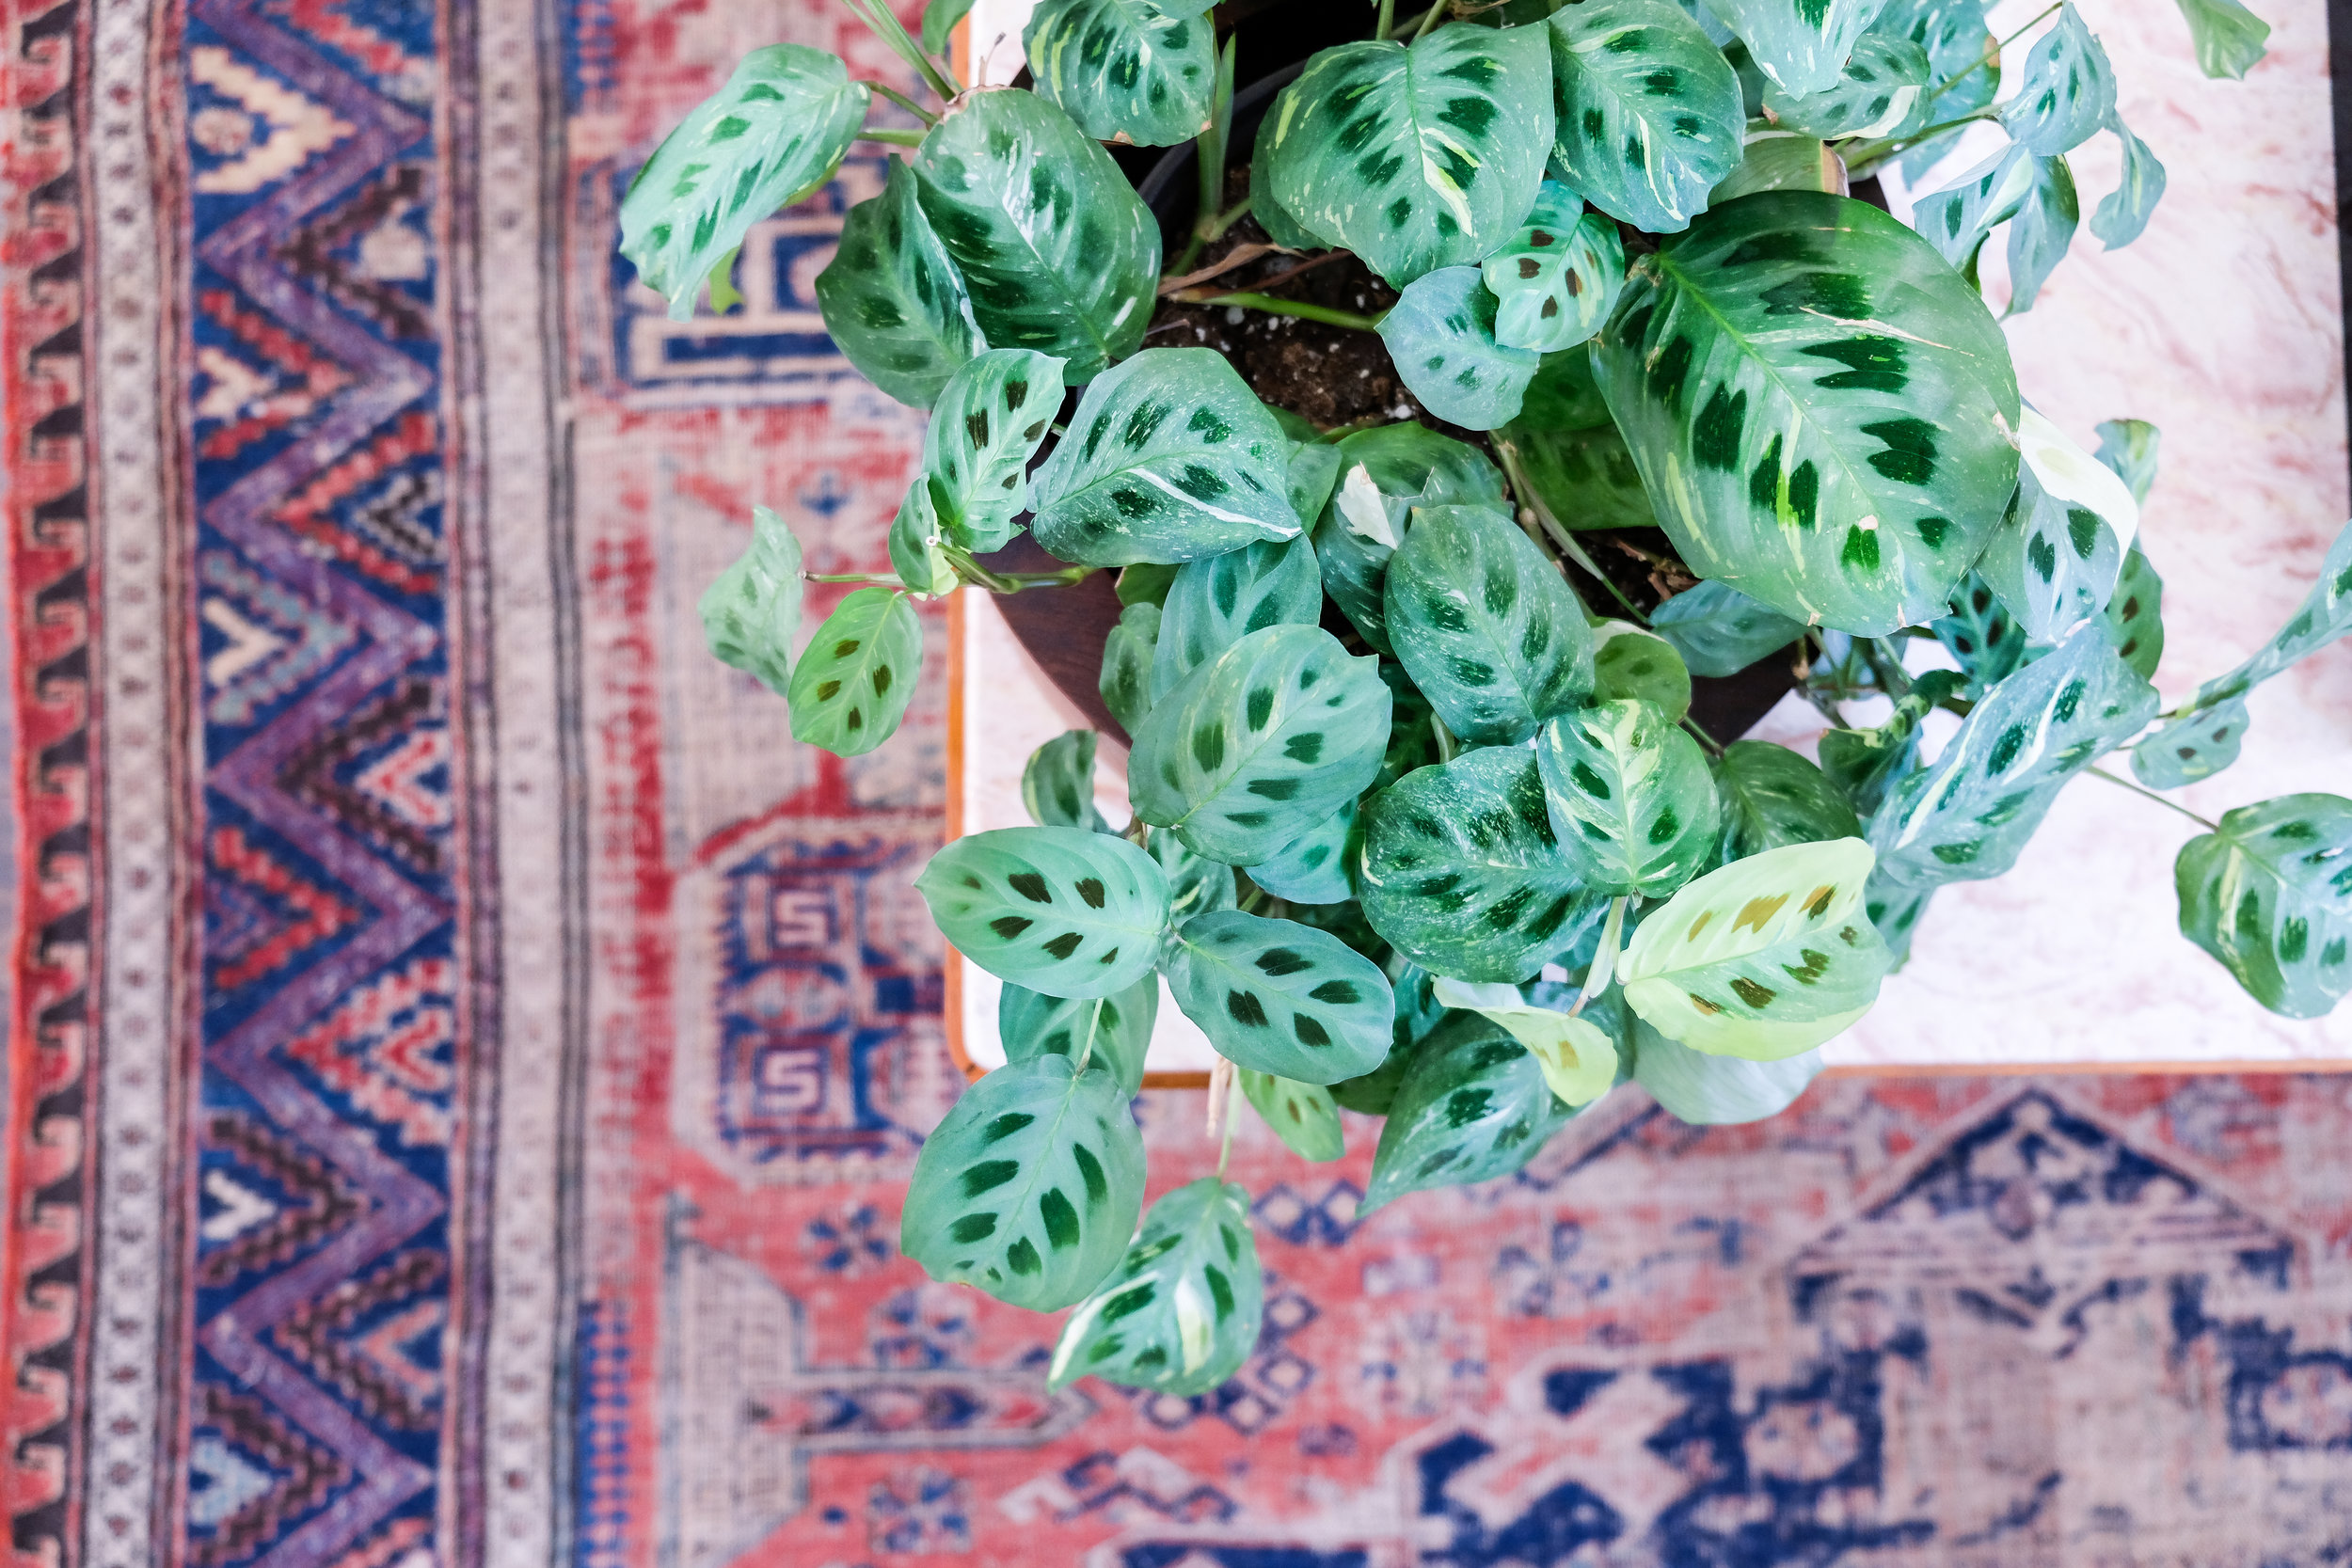 I've had this prayer plant for a few months and just love the pattern!